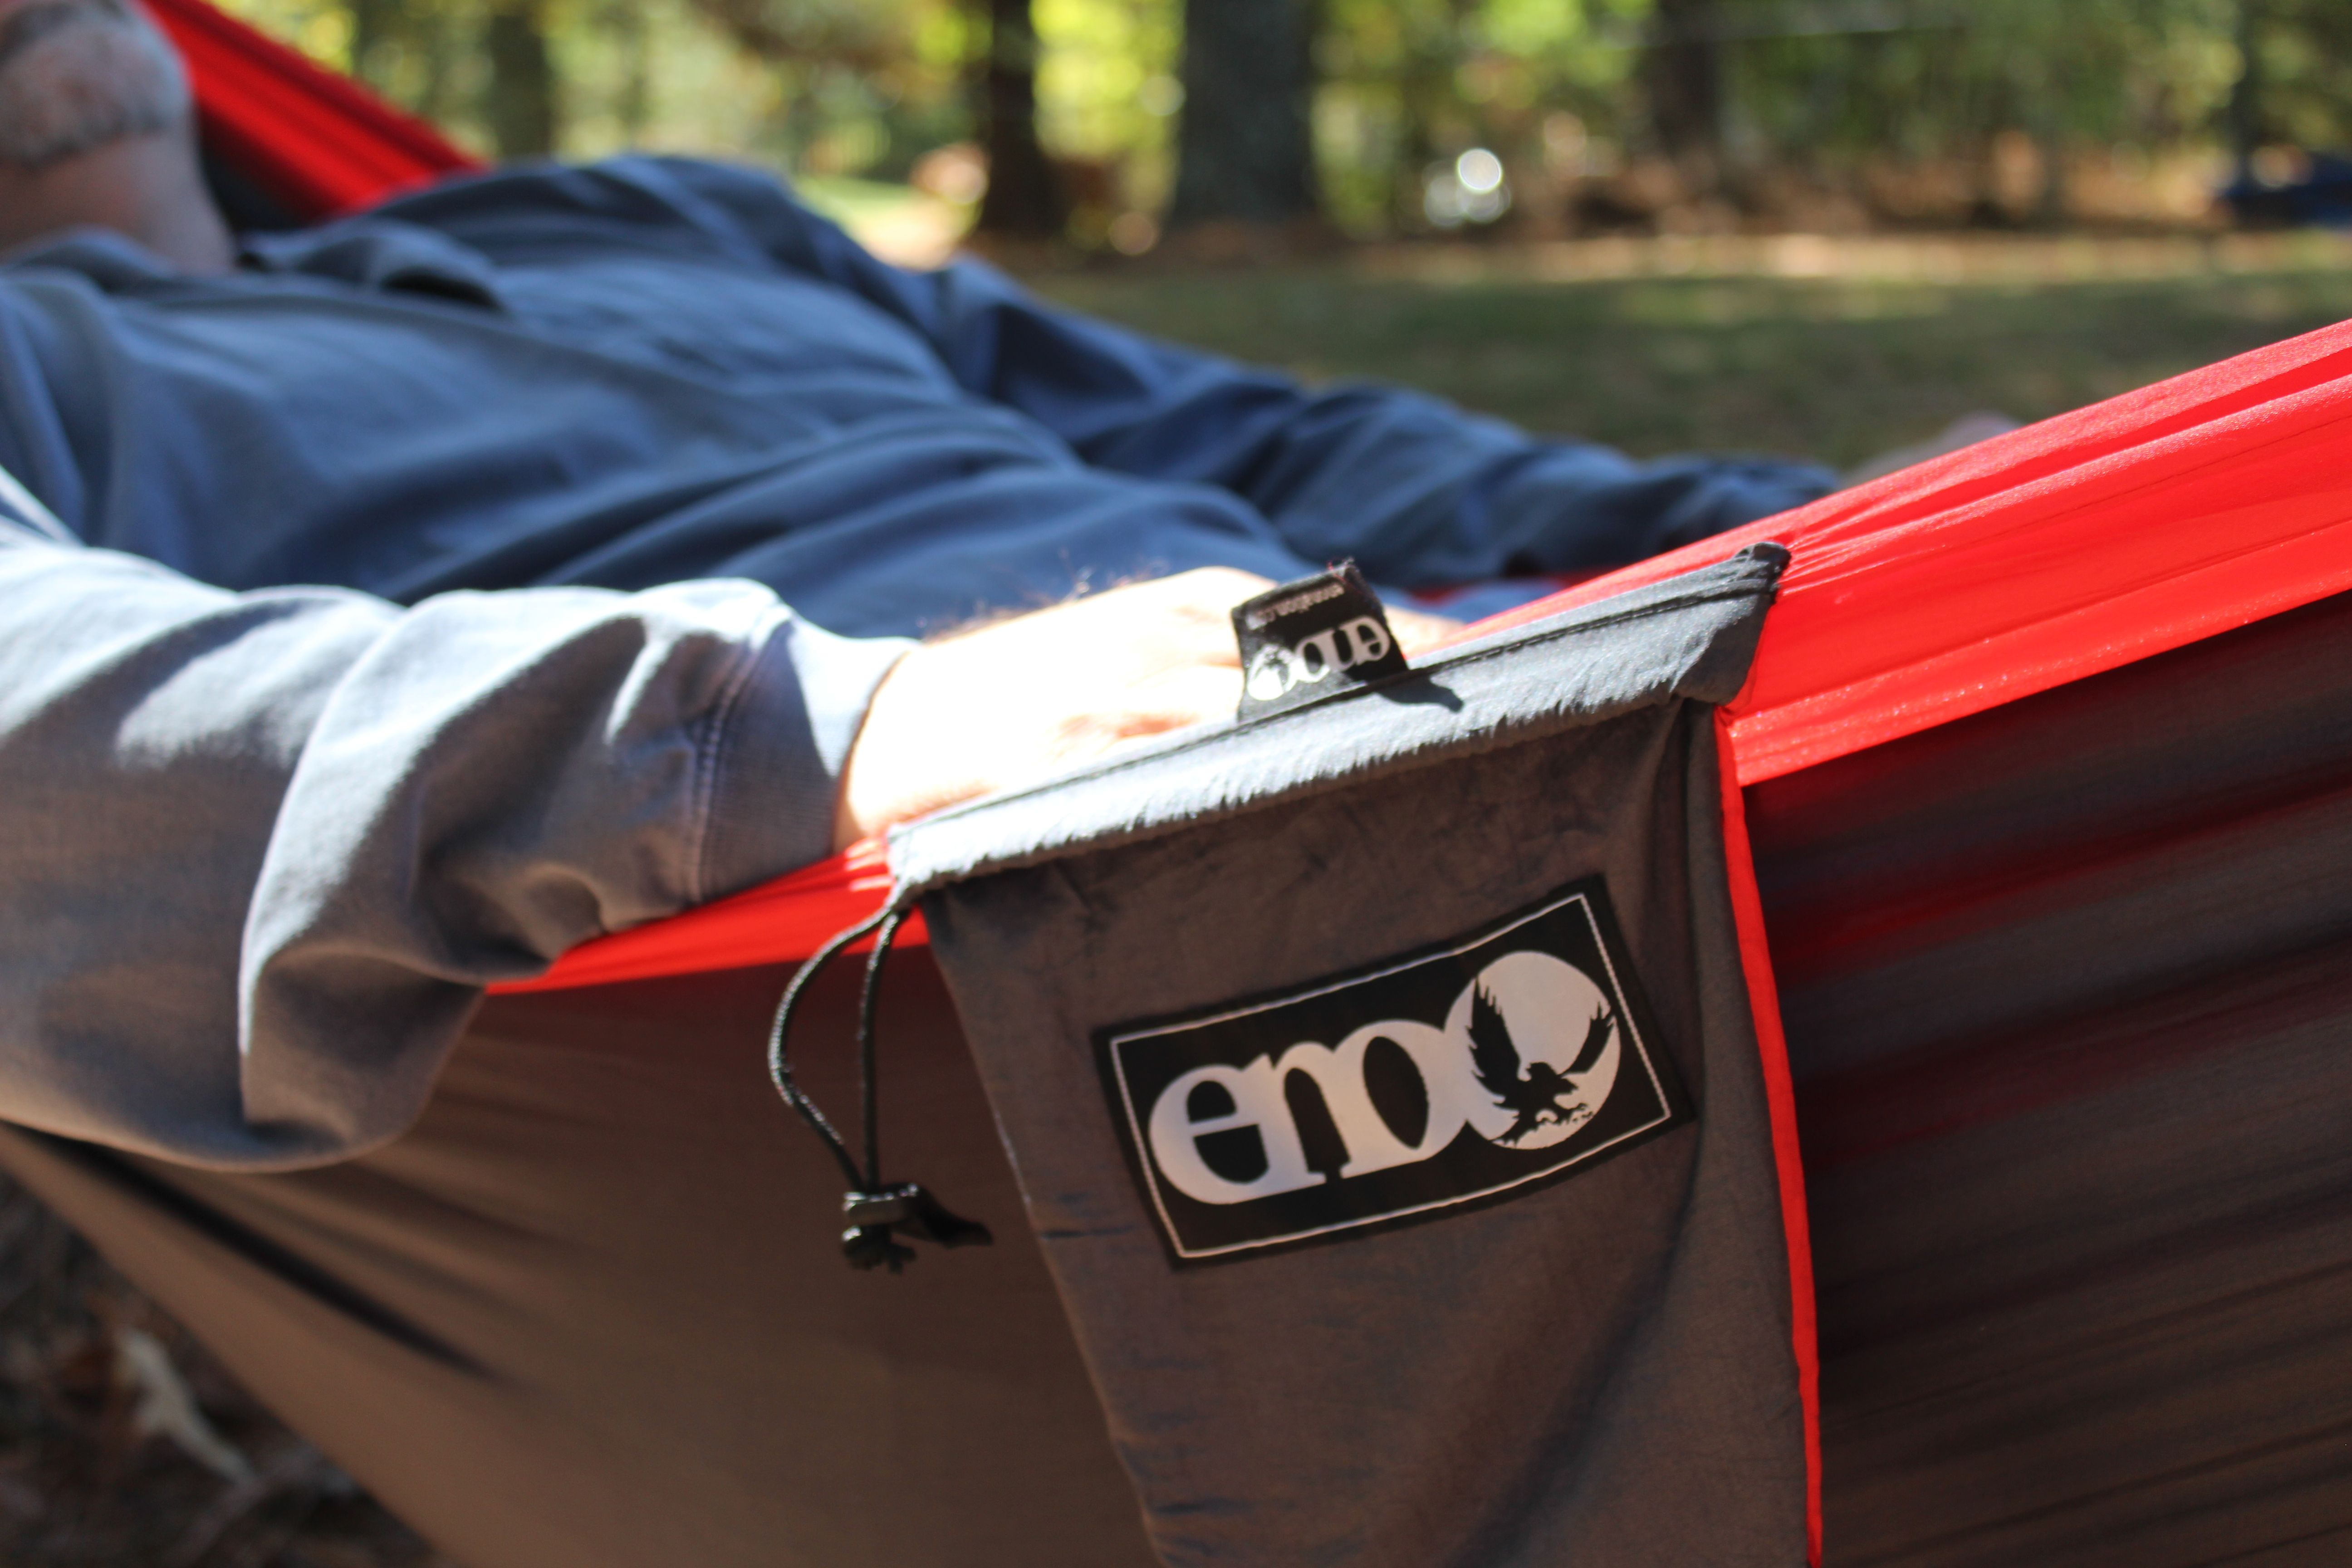 outdoors singlenest blue hammock camping tnh products